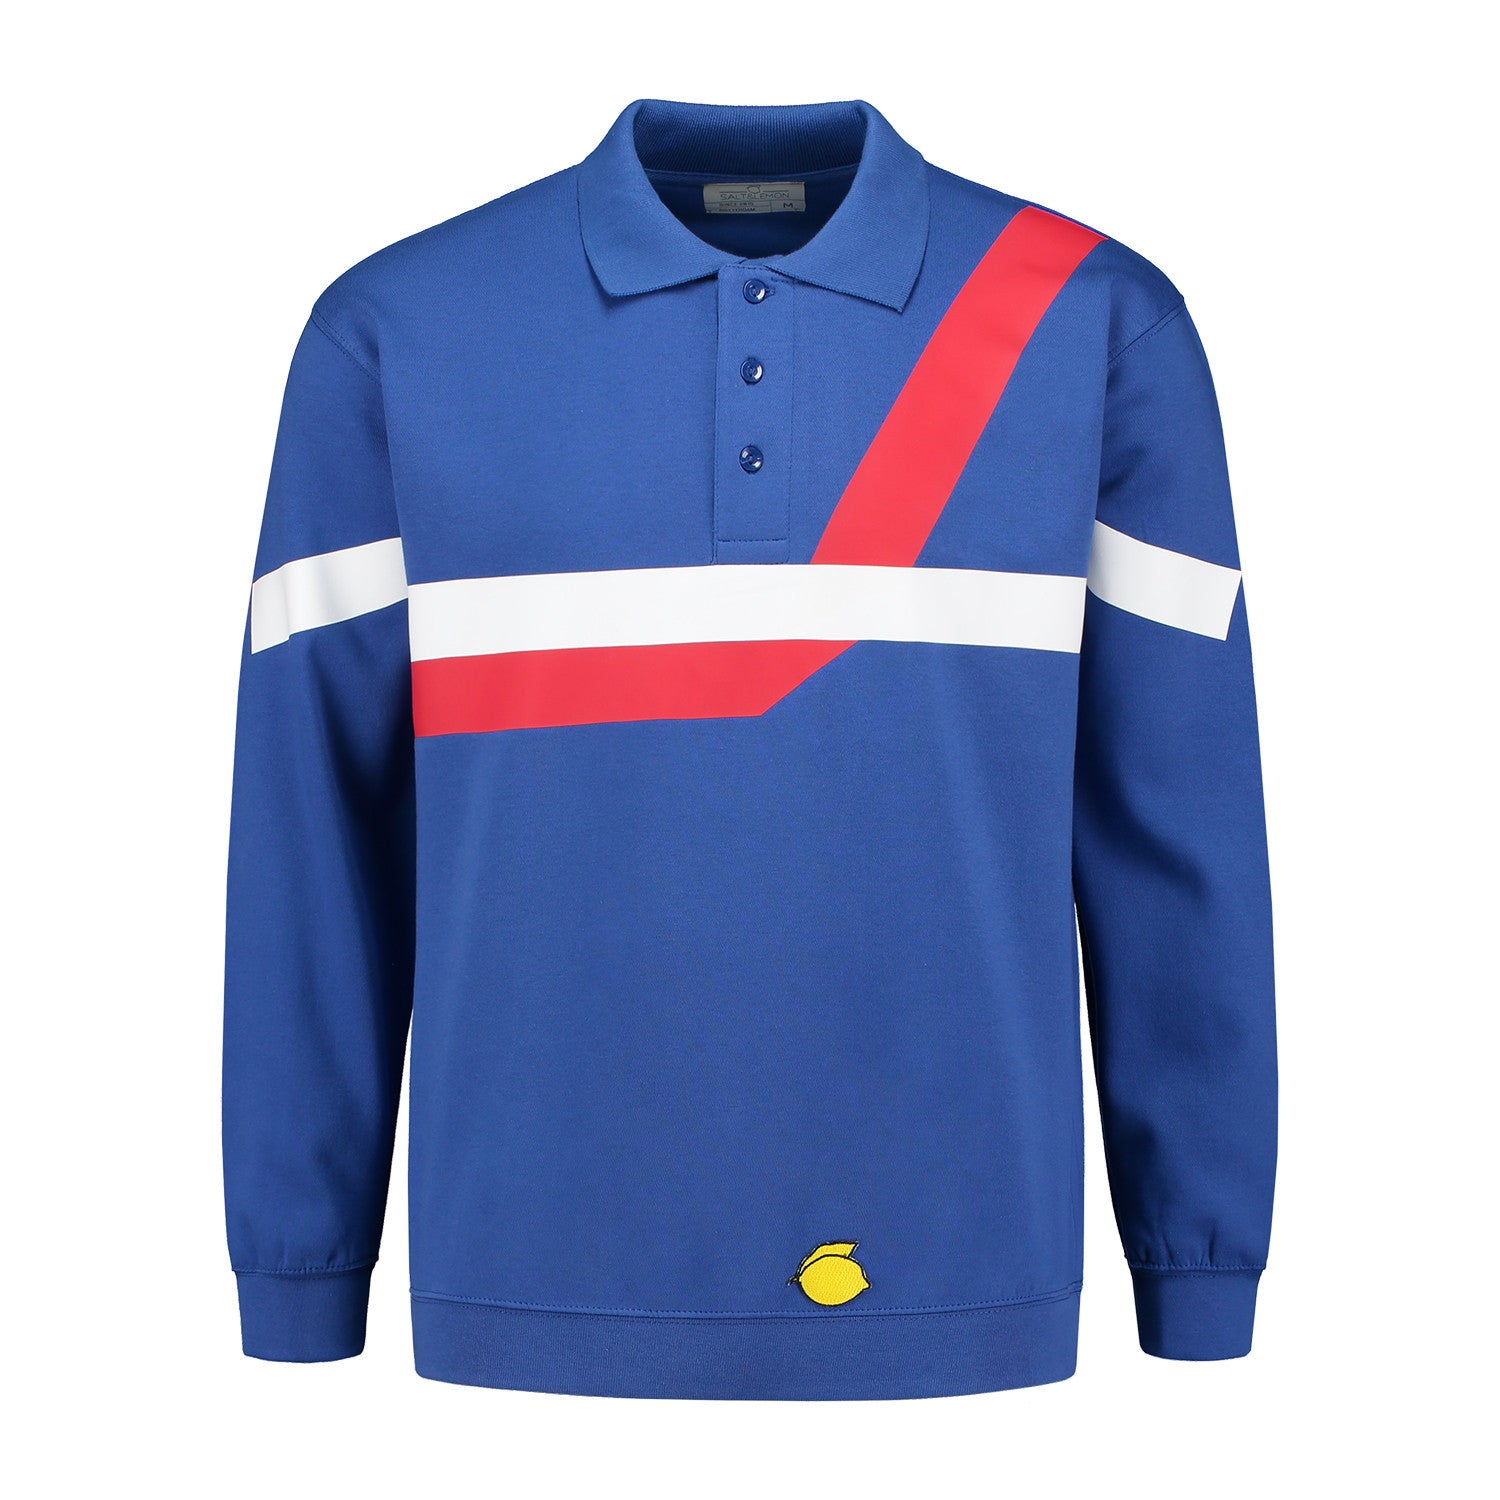 Russian polo sweater